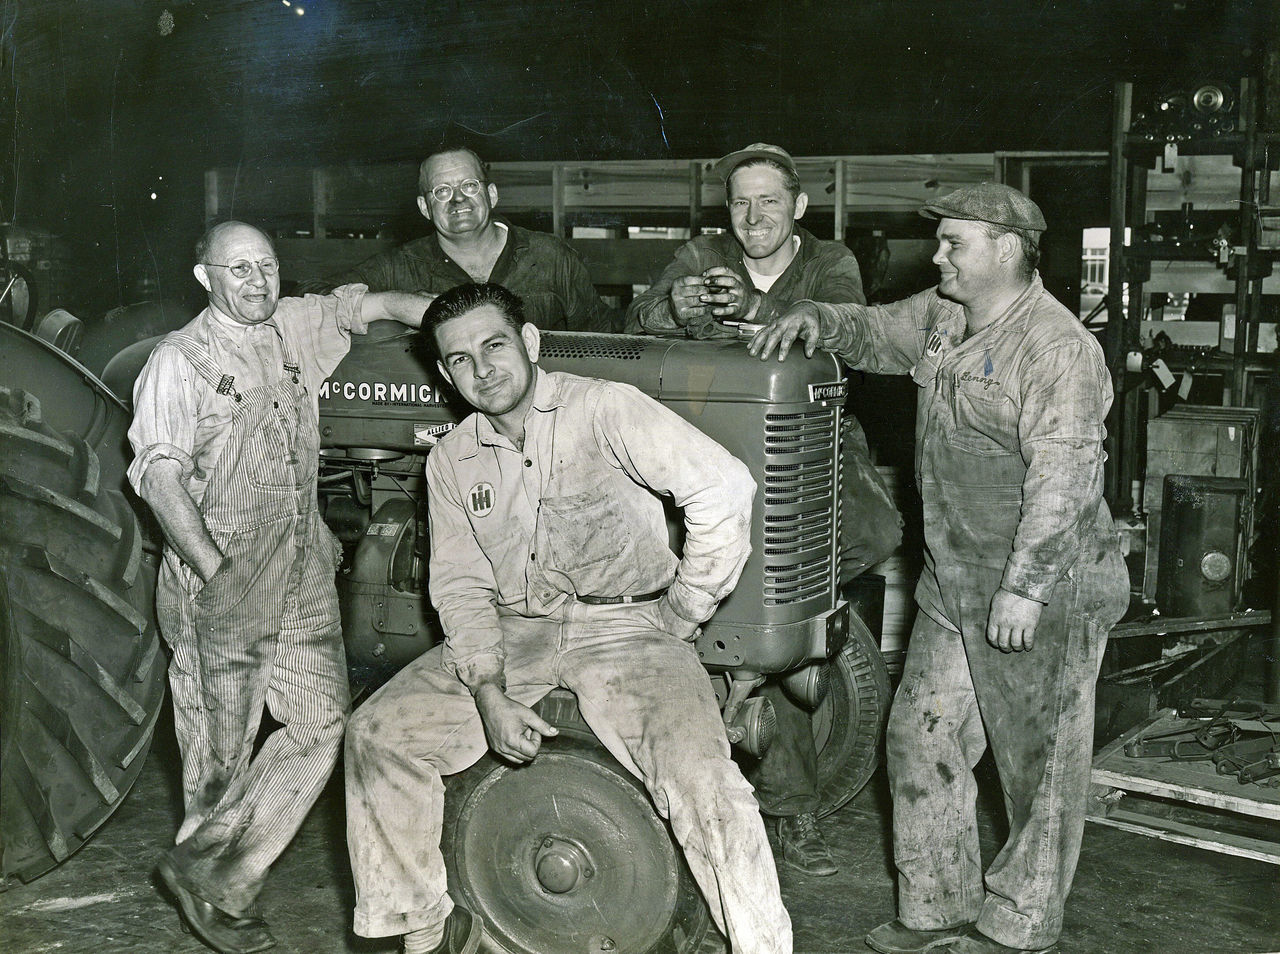 Mechanics on a tractor Looking At Camera Mechanic Mechanics Men Old Mechanics Old Pic  Old Pictures Old Tractor Old Tractor. Old Tractors Portrait Real People Tractor Vintage Photo Working Working Hard